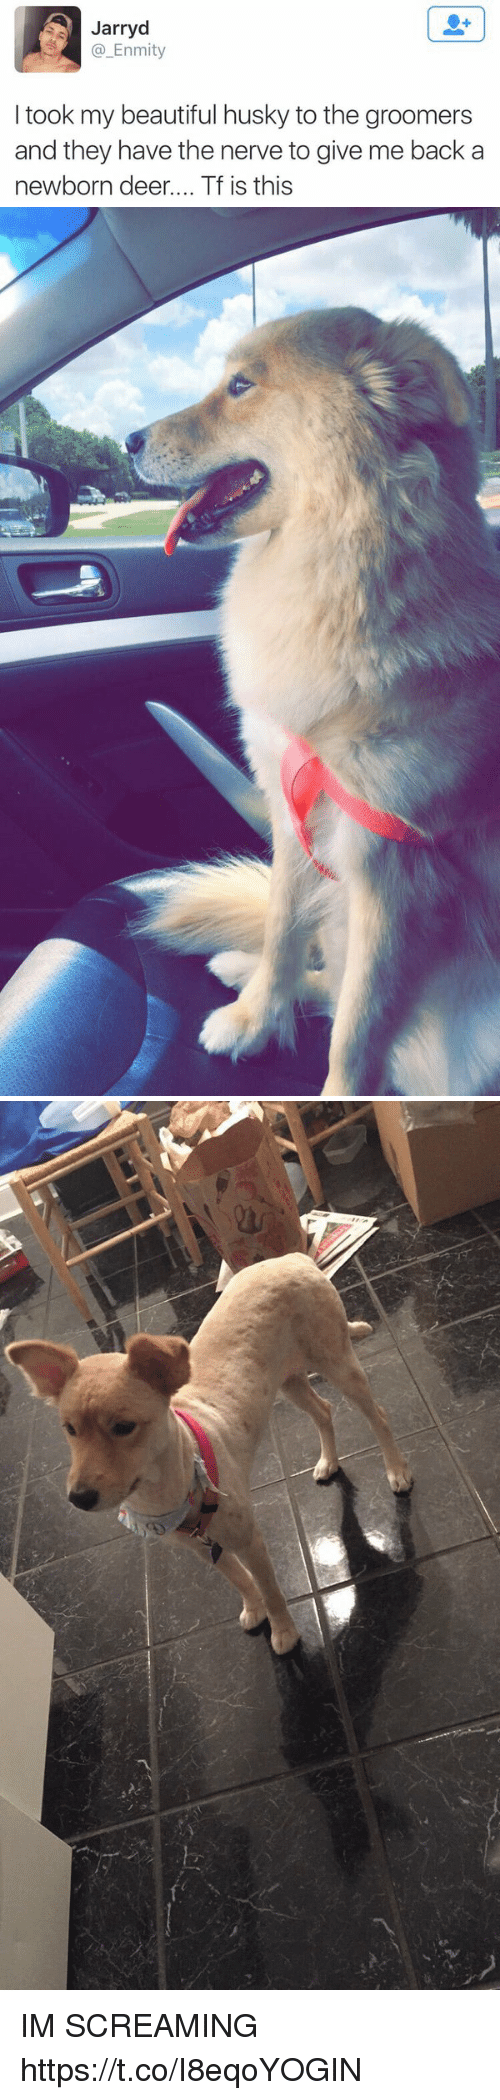 Beautiful, Deer, and Husky: Jarryd  @_Enmity  I took my beautiful husky to the groomers  and they have the nerve to give me back a  newborn deer.... Tf is this IM SCREAMING https://t.co/I8eqoYOGIN